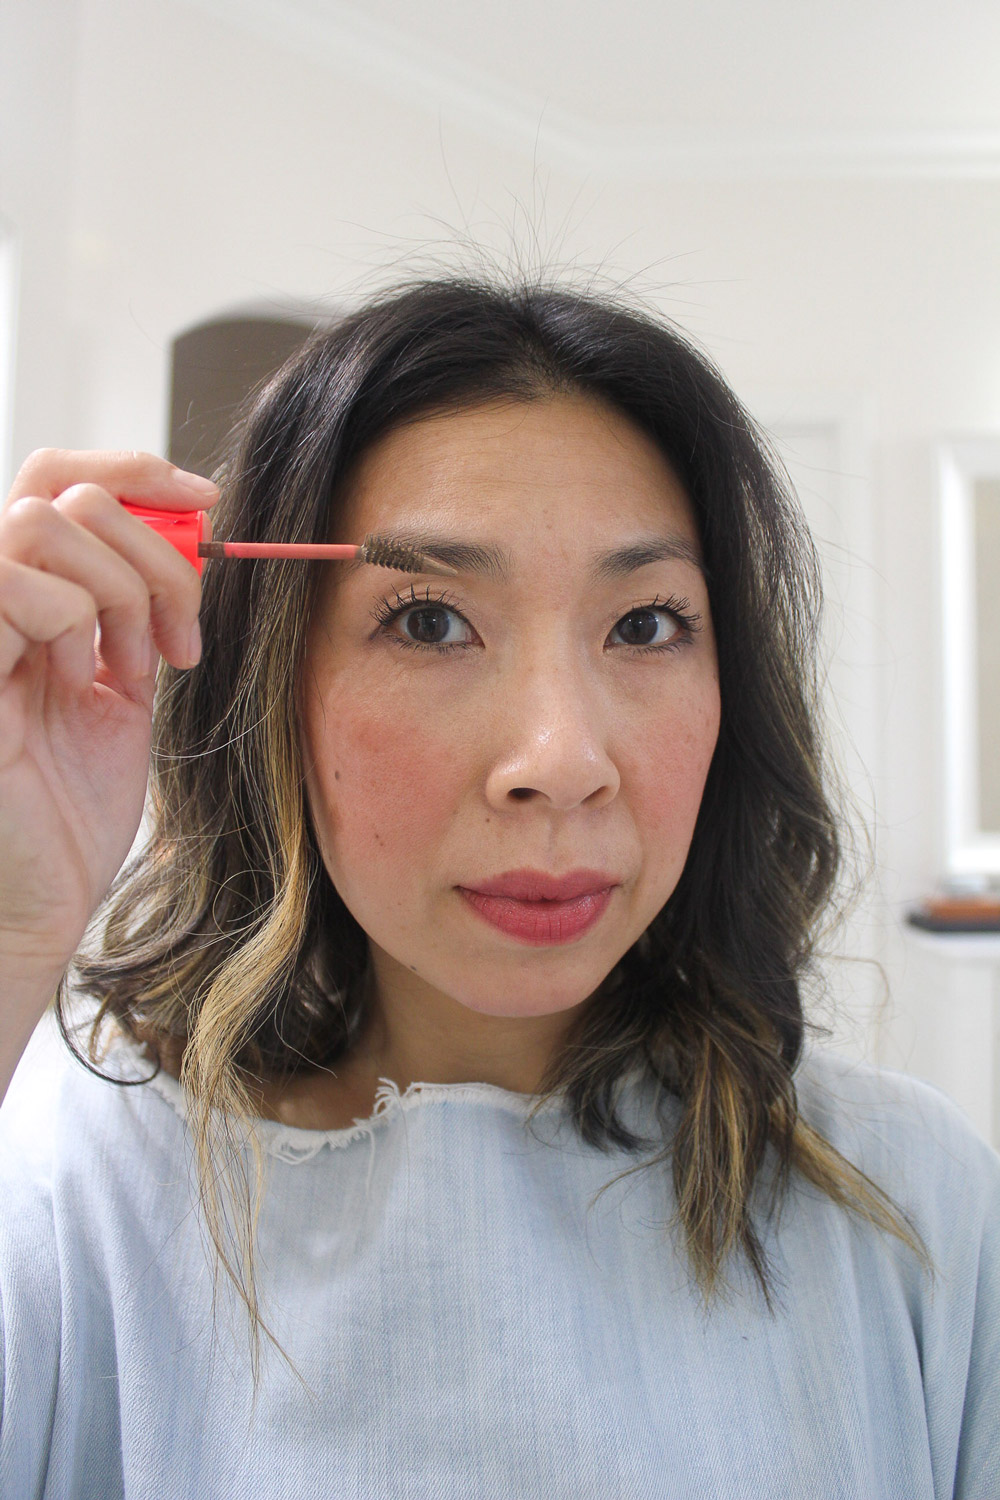 chosungah DONG GONG MINN BROW MAKER, easy and fast korean eyebrows